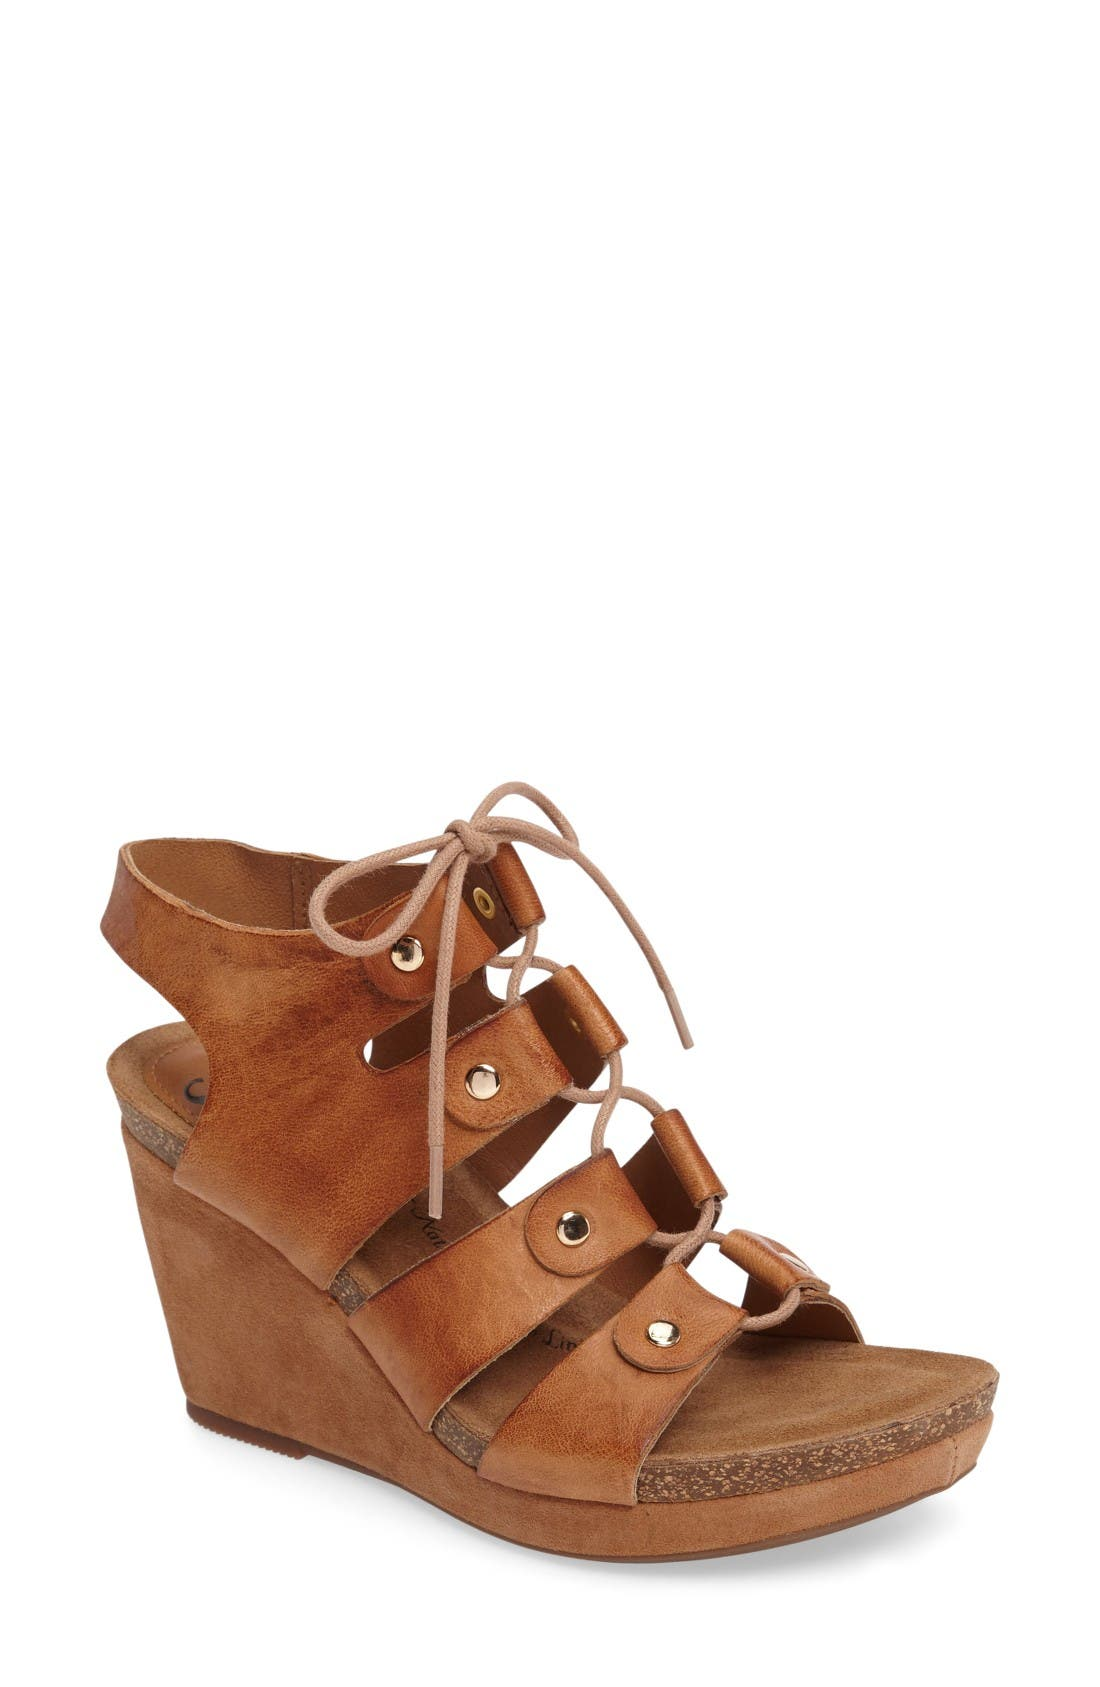 Söfft Carita Lace-Up Wedge Sandal (Women)